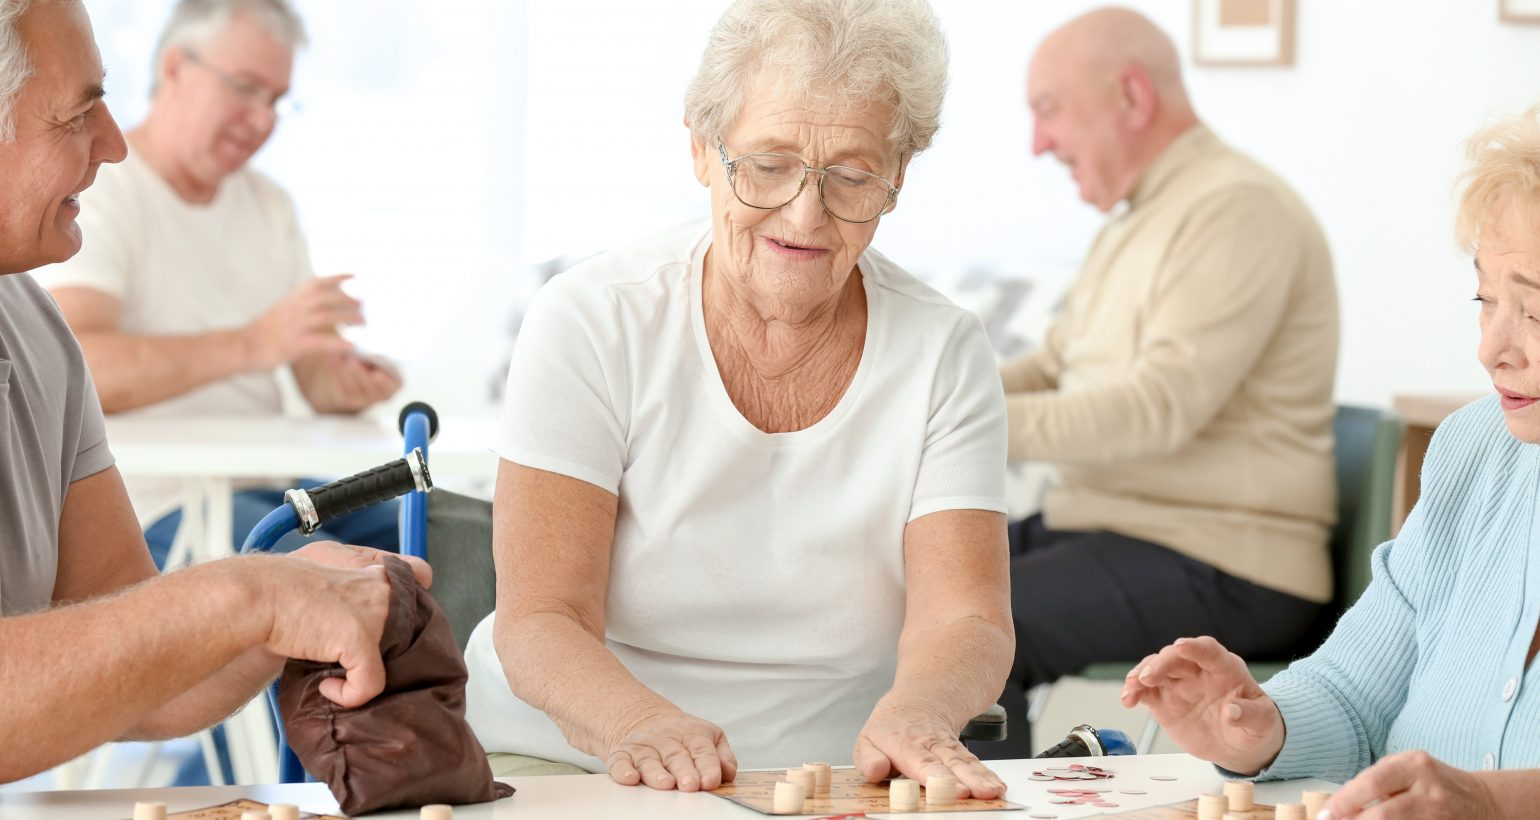 Senior people playing game at community center